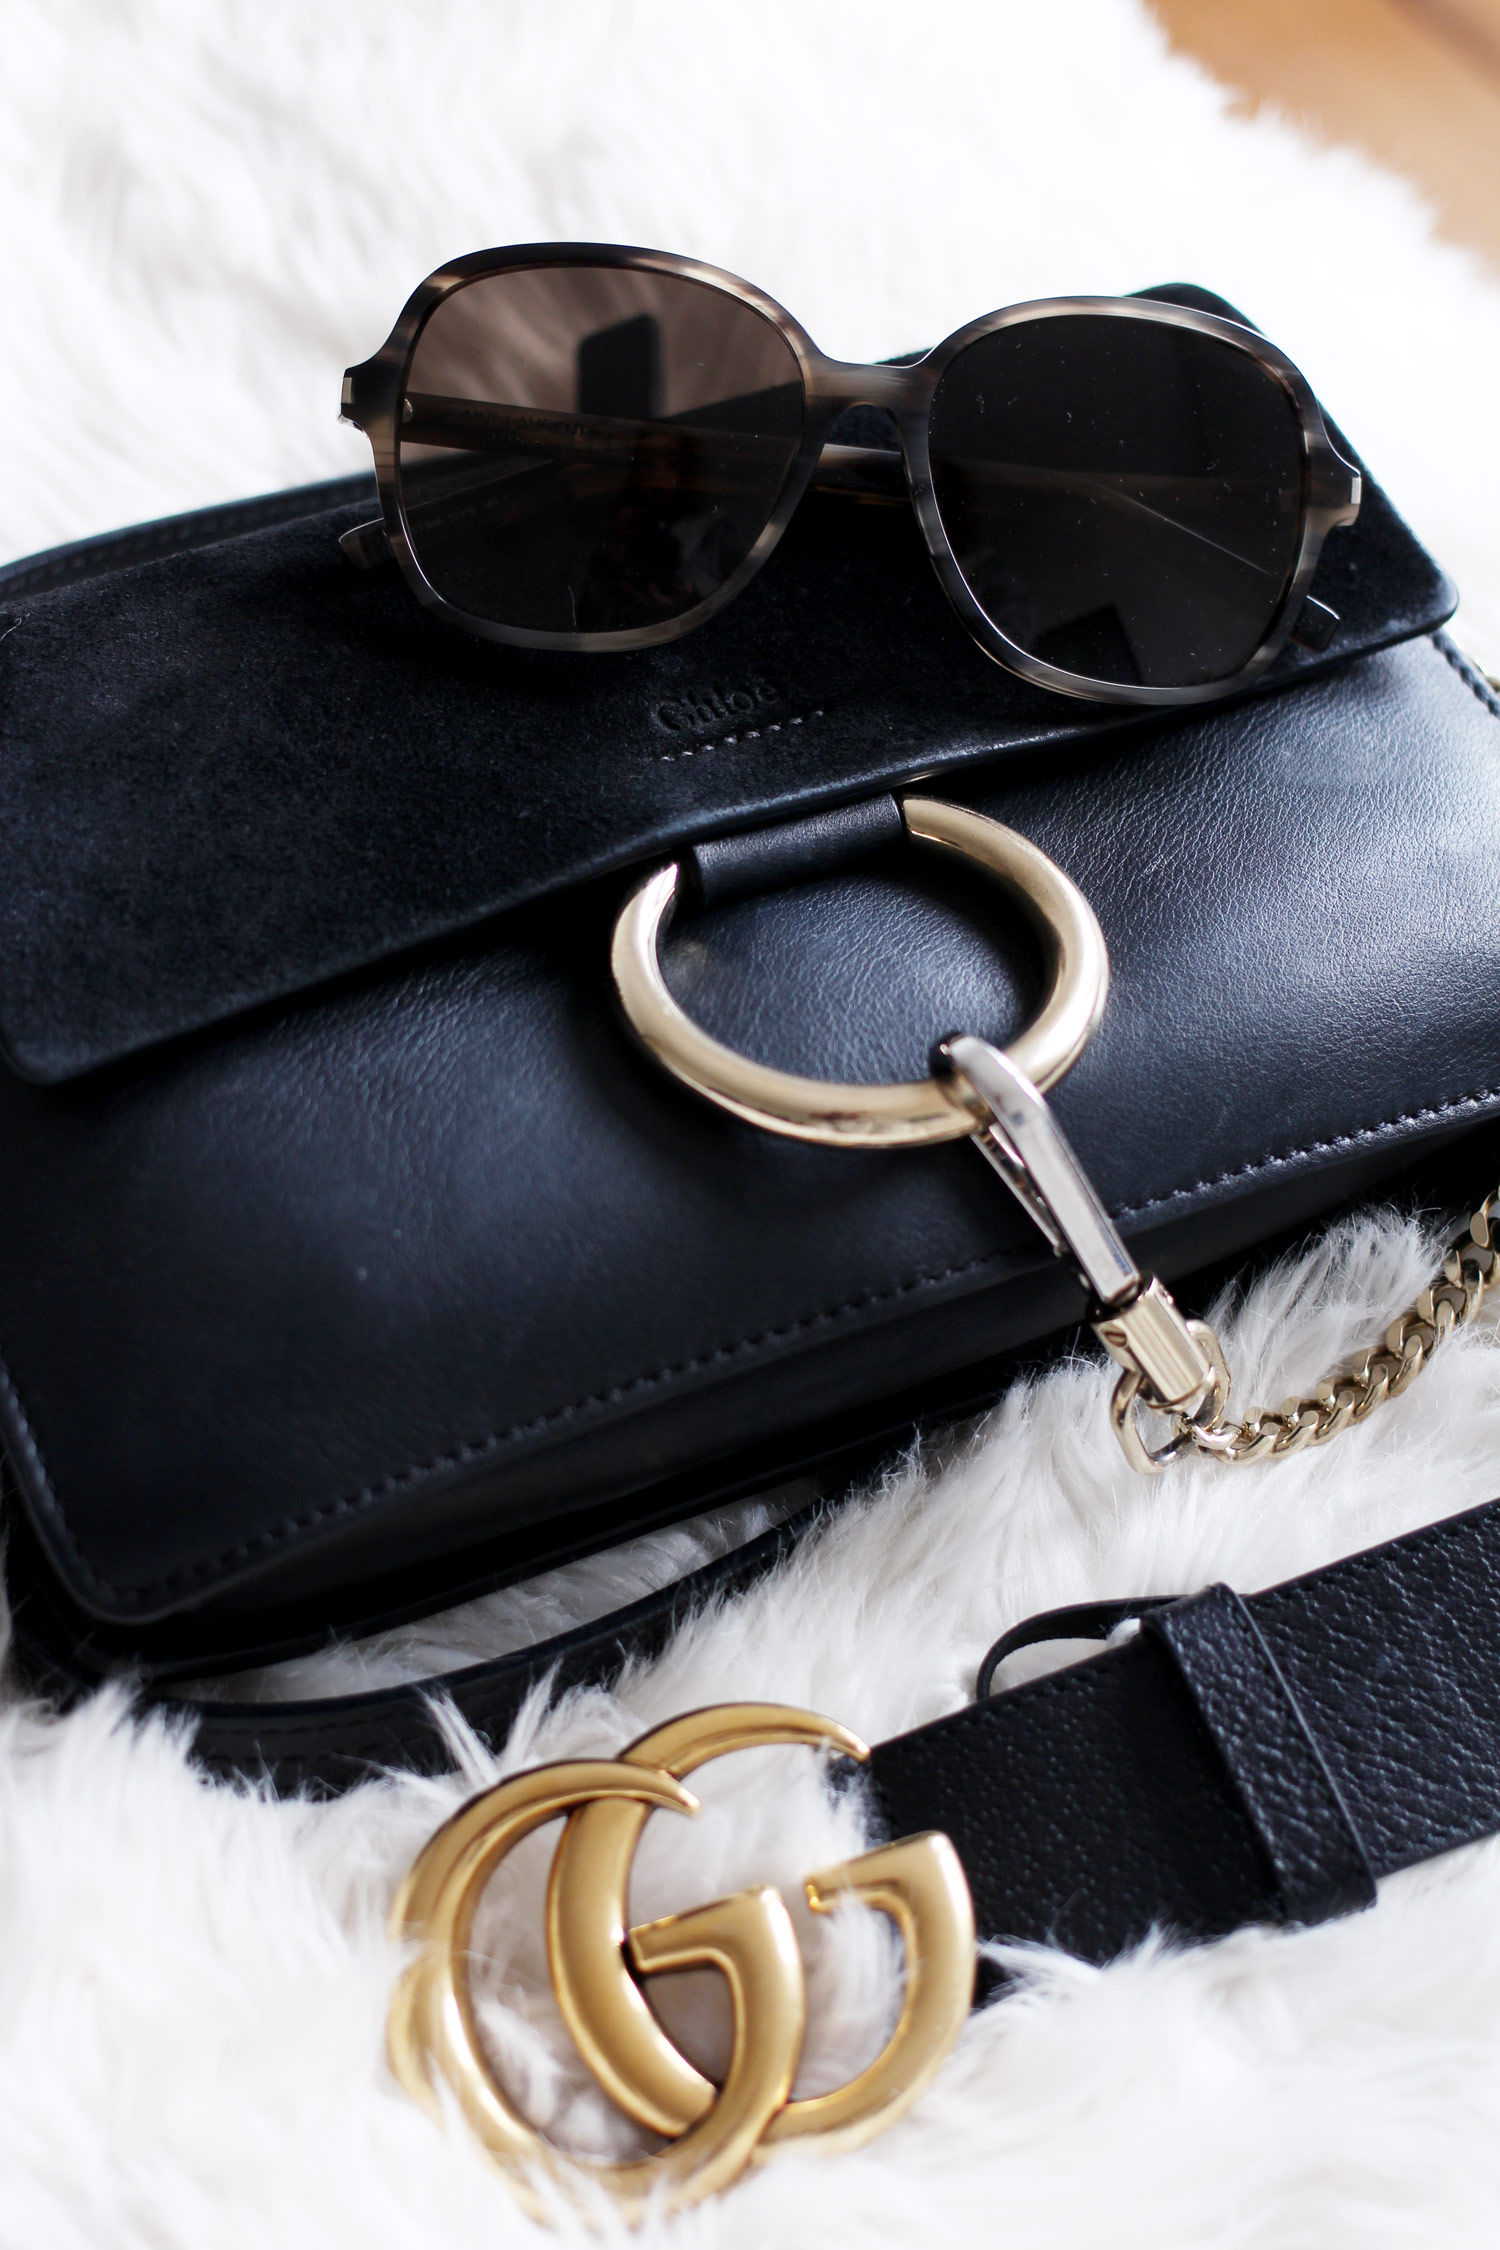 how-I-choose-what-to-invest-in-chloe-gucci-ysl-1